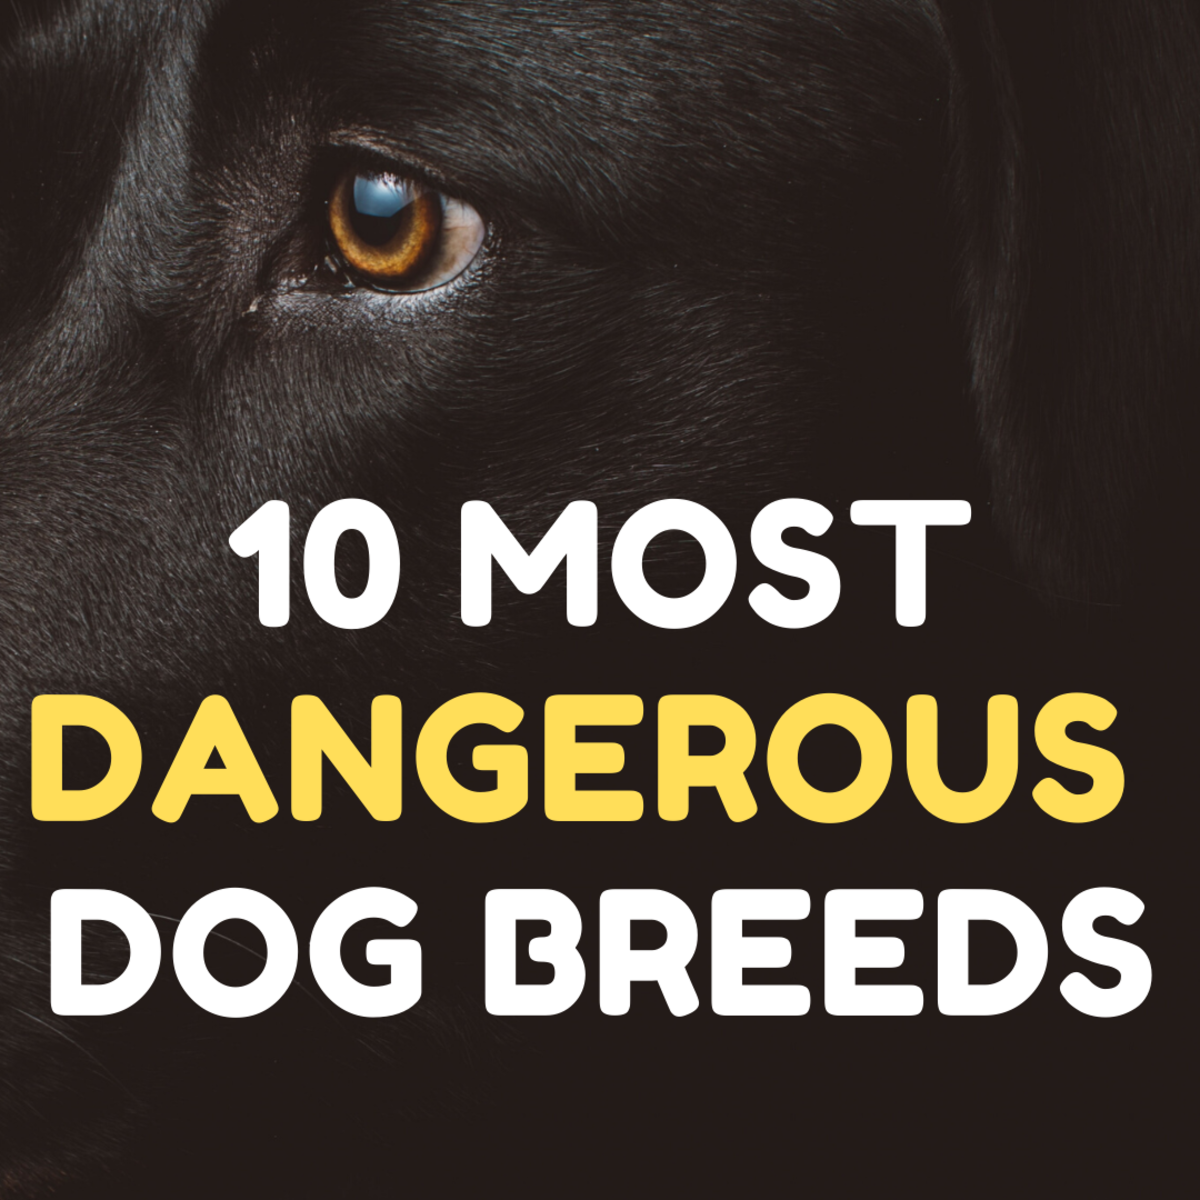 Most Dangerous Dog Breeds: Dog Bite and Attack Statistics